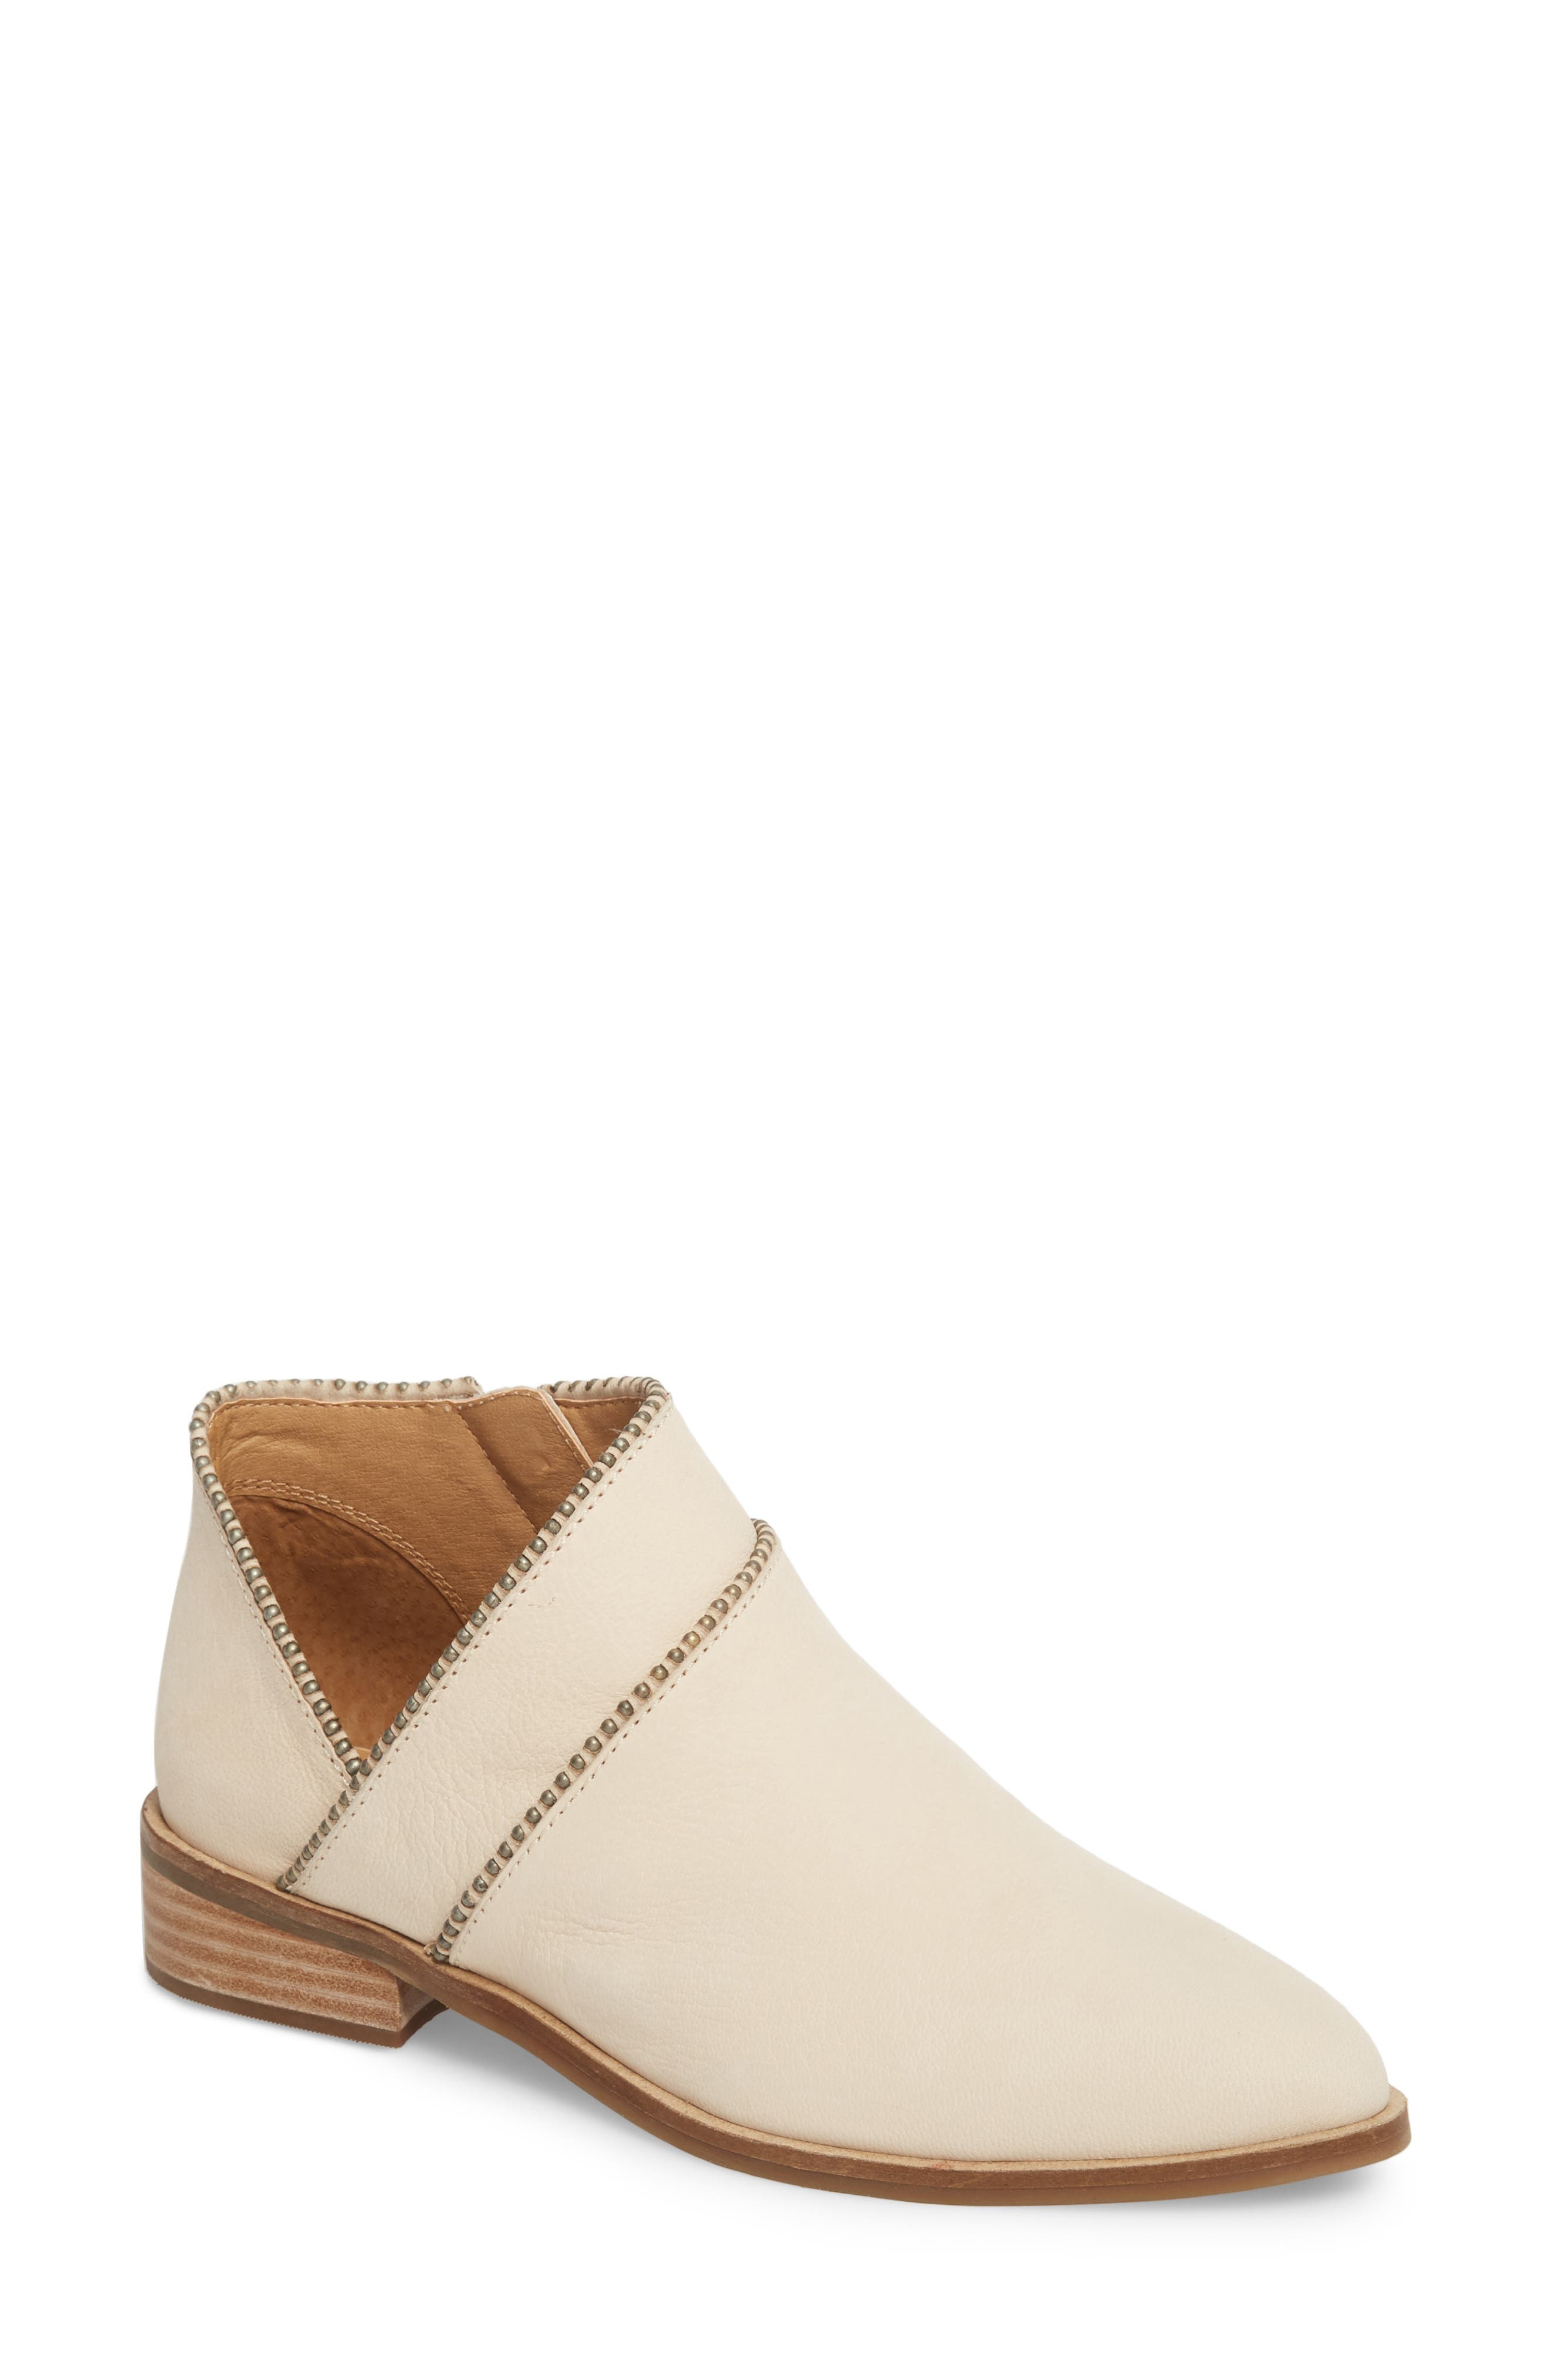 Lucky Brand Perrma Bootie, Ivory